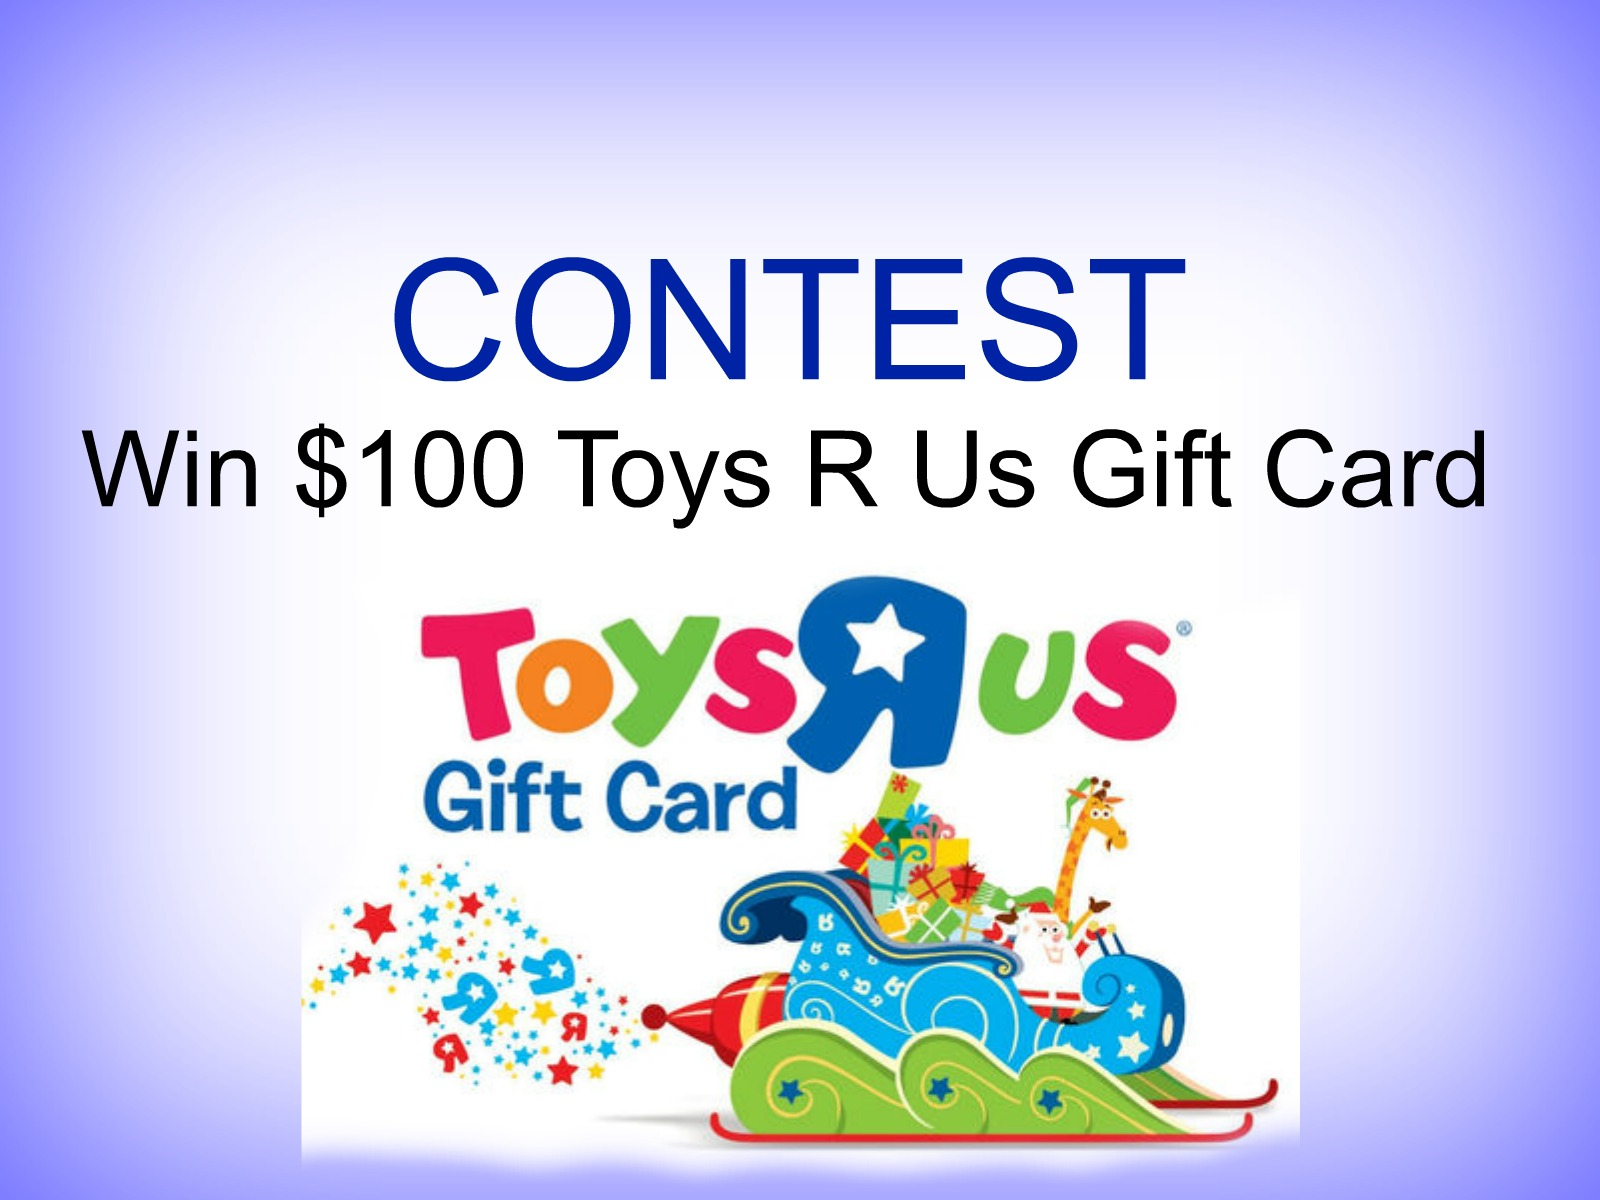 CONTEST: Win $100 TOYS R US